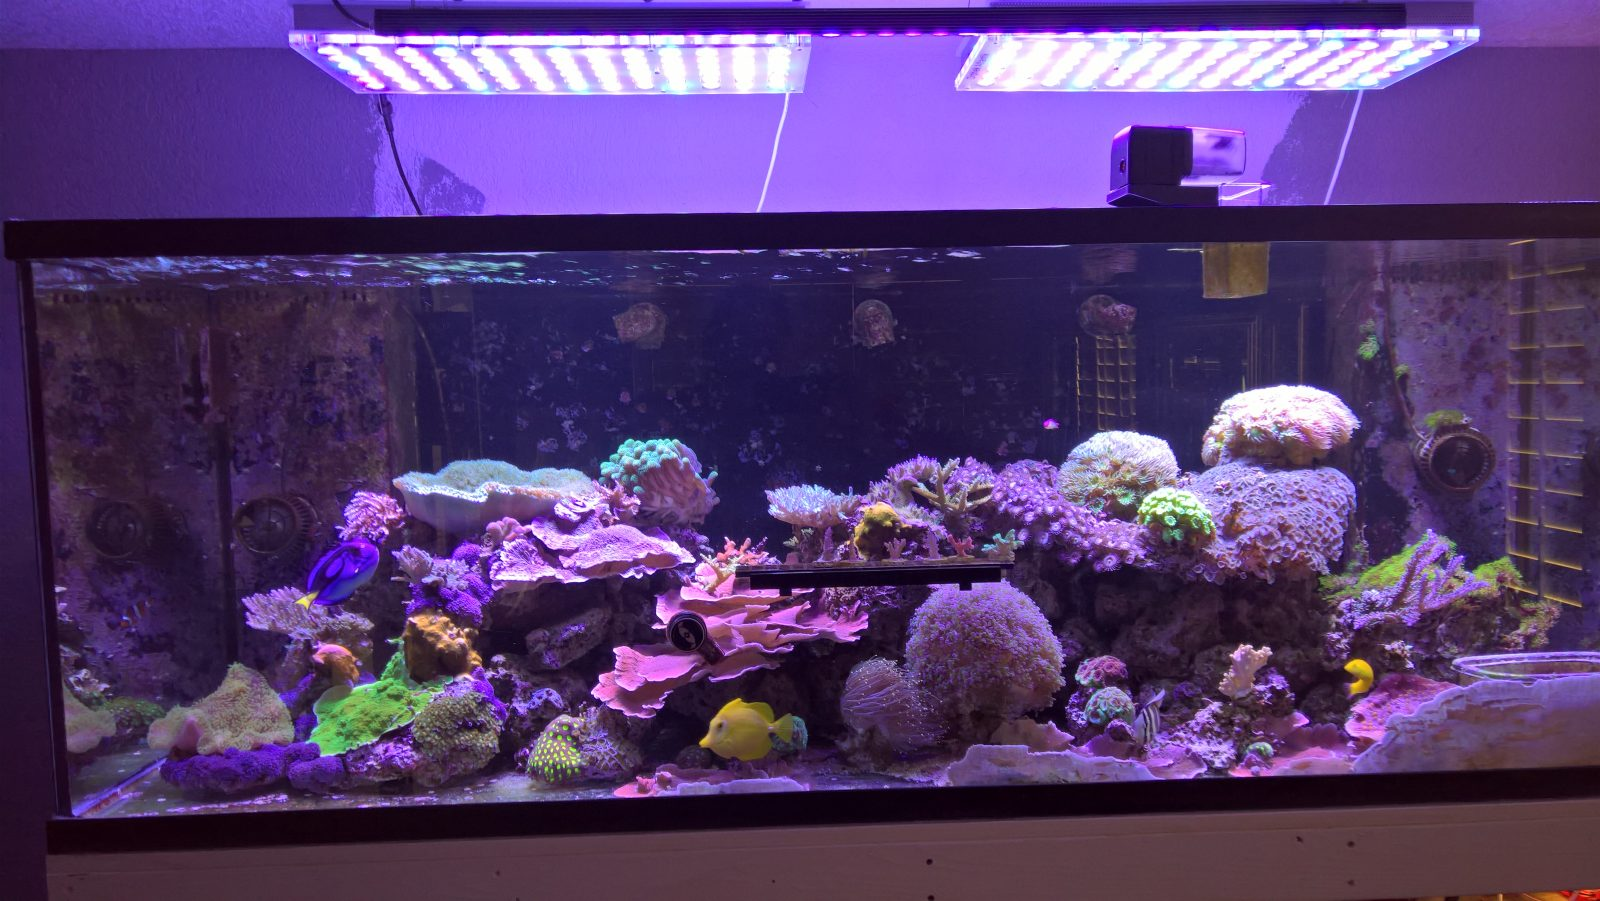 USA reef tank karo bar LED anyar 108 Watt OR 120